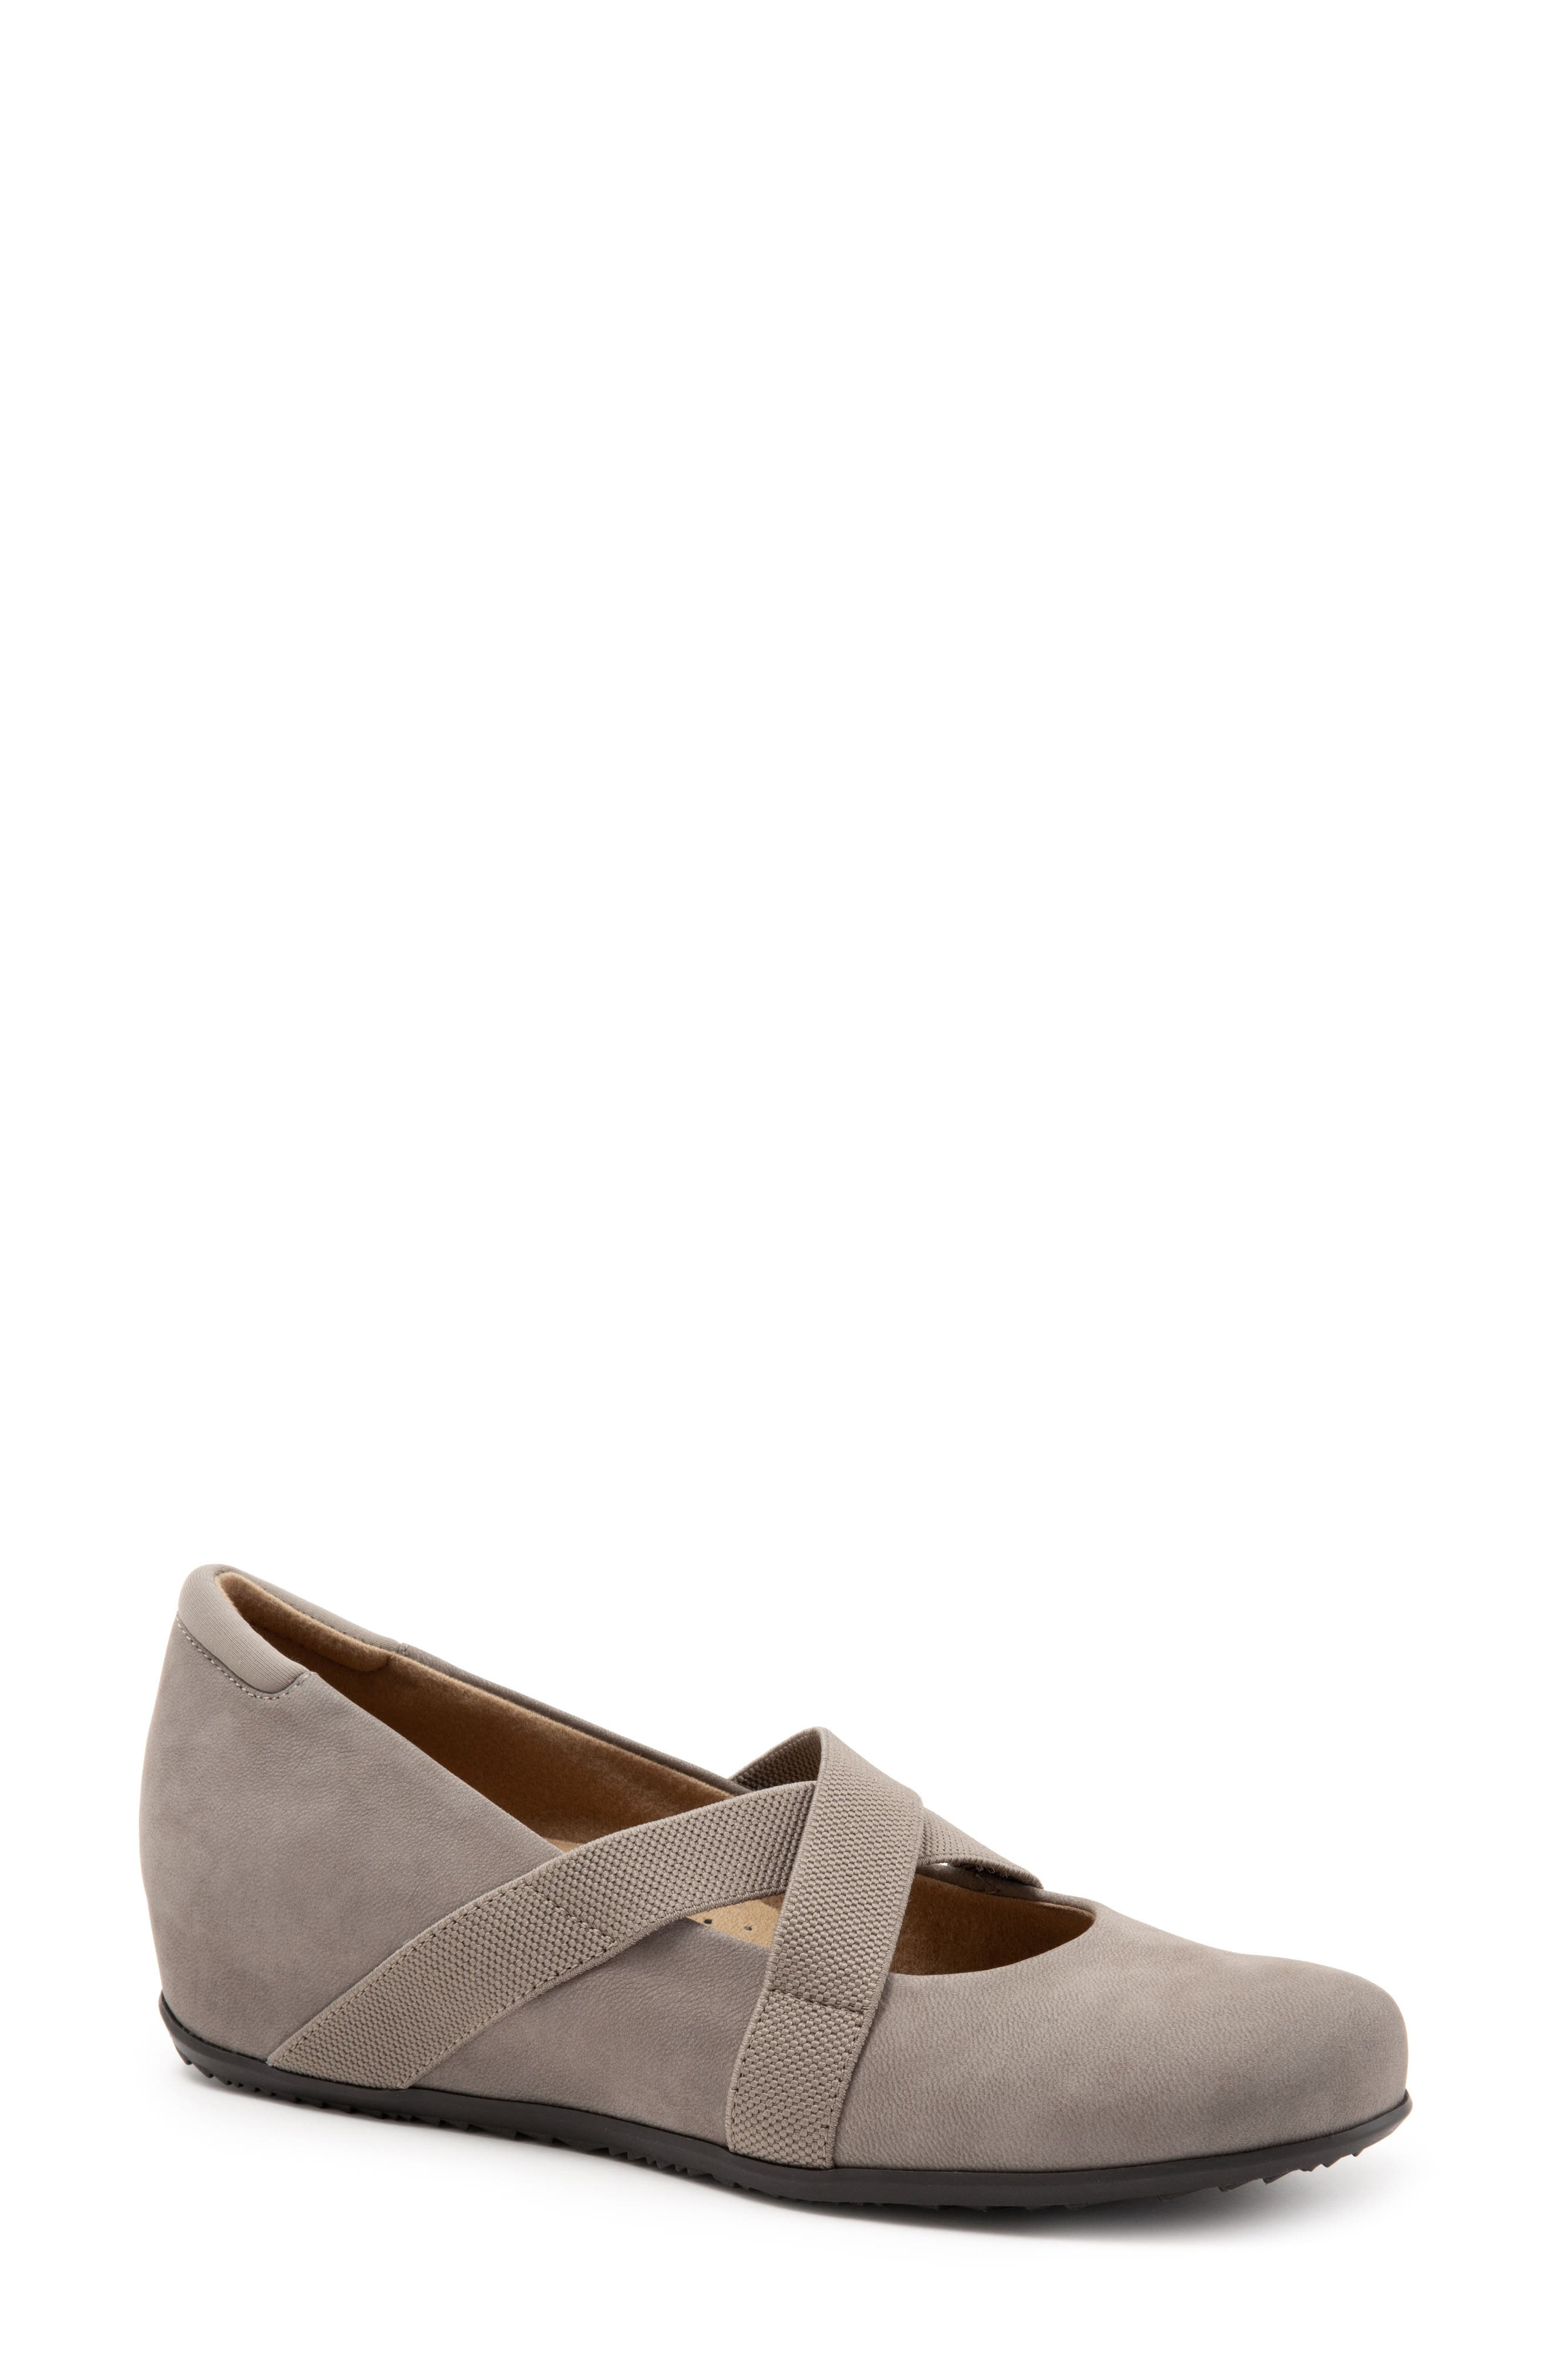 SOFTWALK<SUP>®</SUP>, Waverly Mary Jane Wedge, Alternate thumbnail 8, color, TAUPE LEATHER